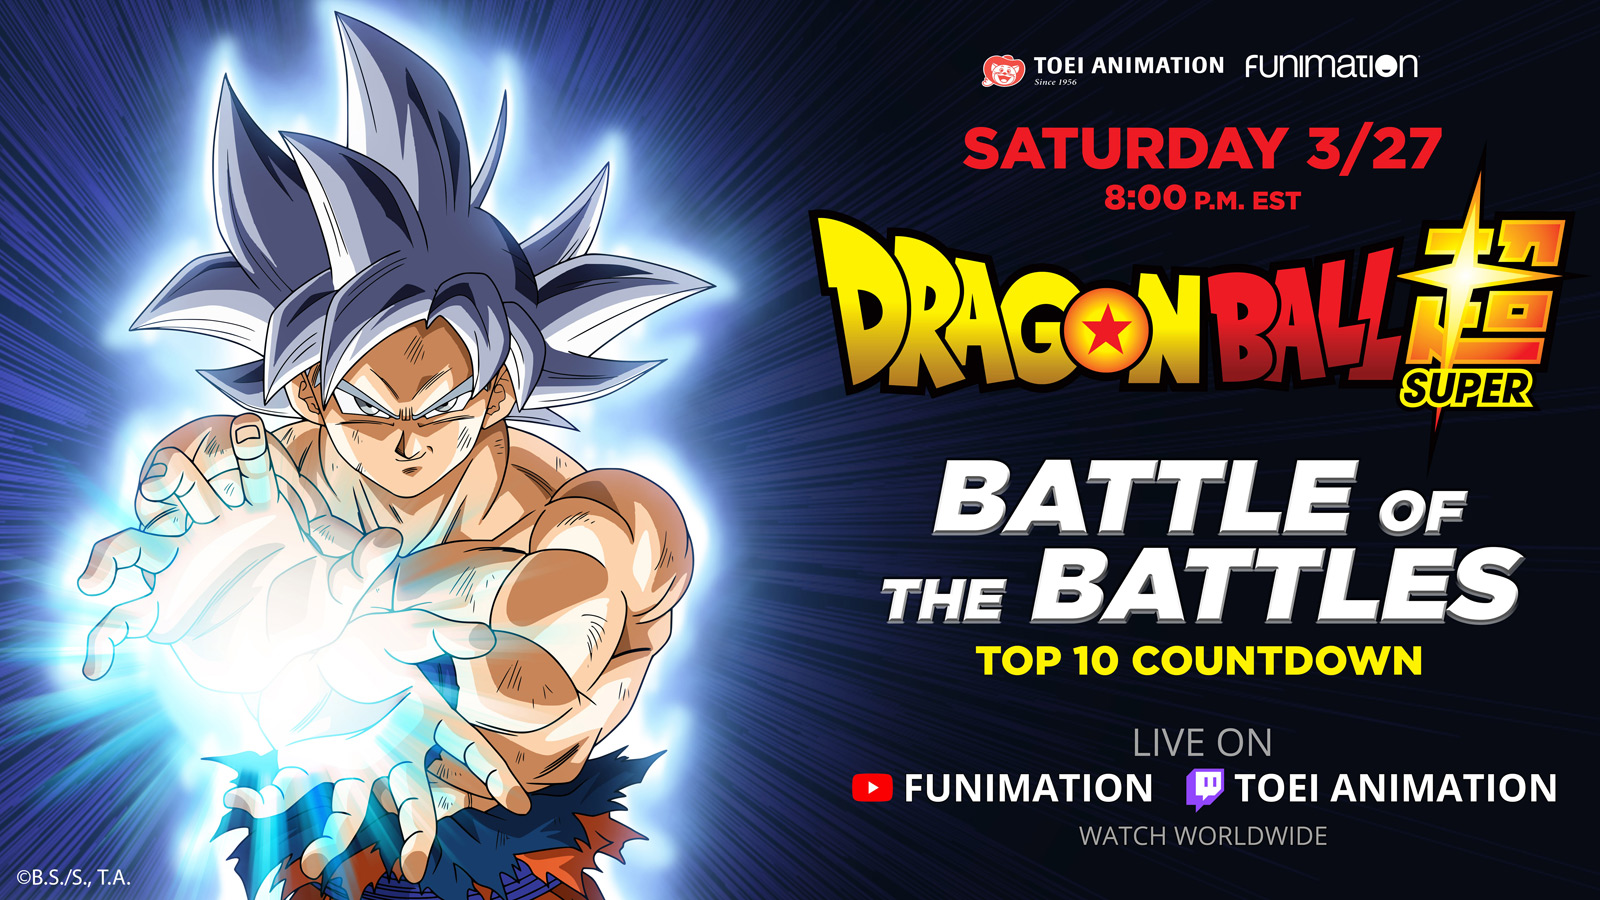 Press Release: Toei Animation and Funimation Present